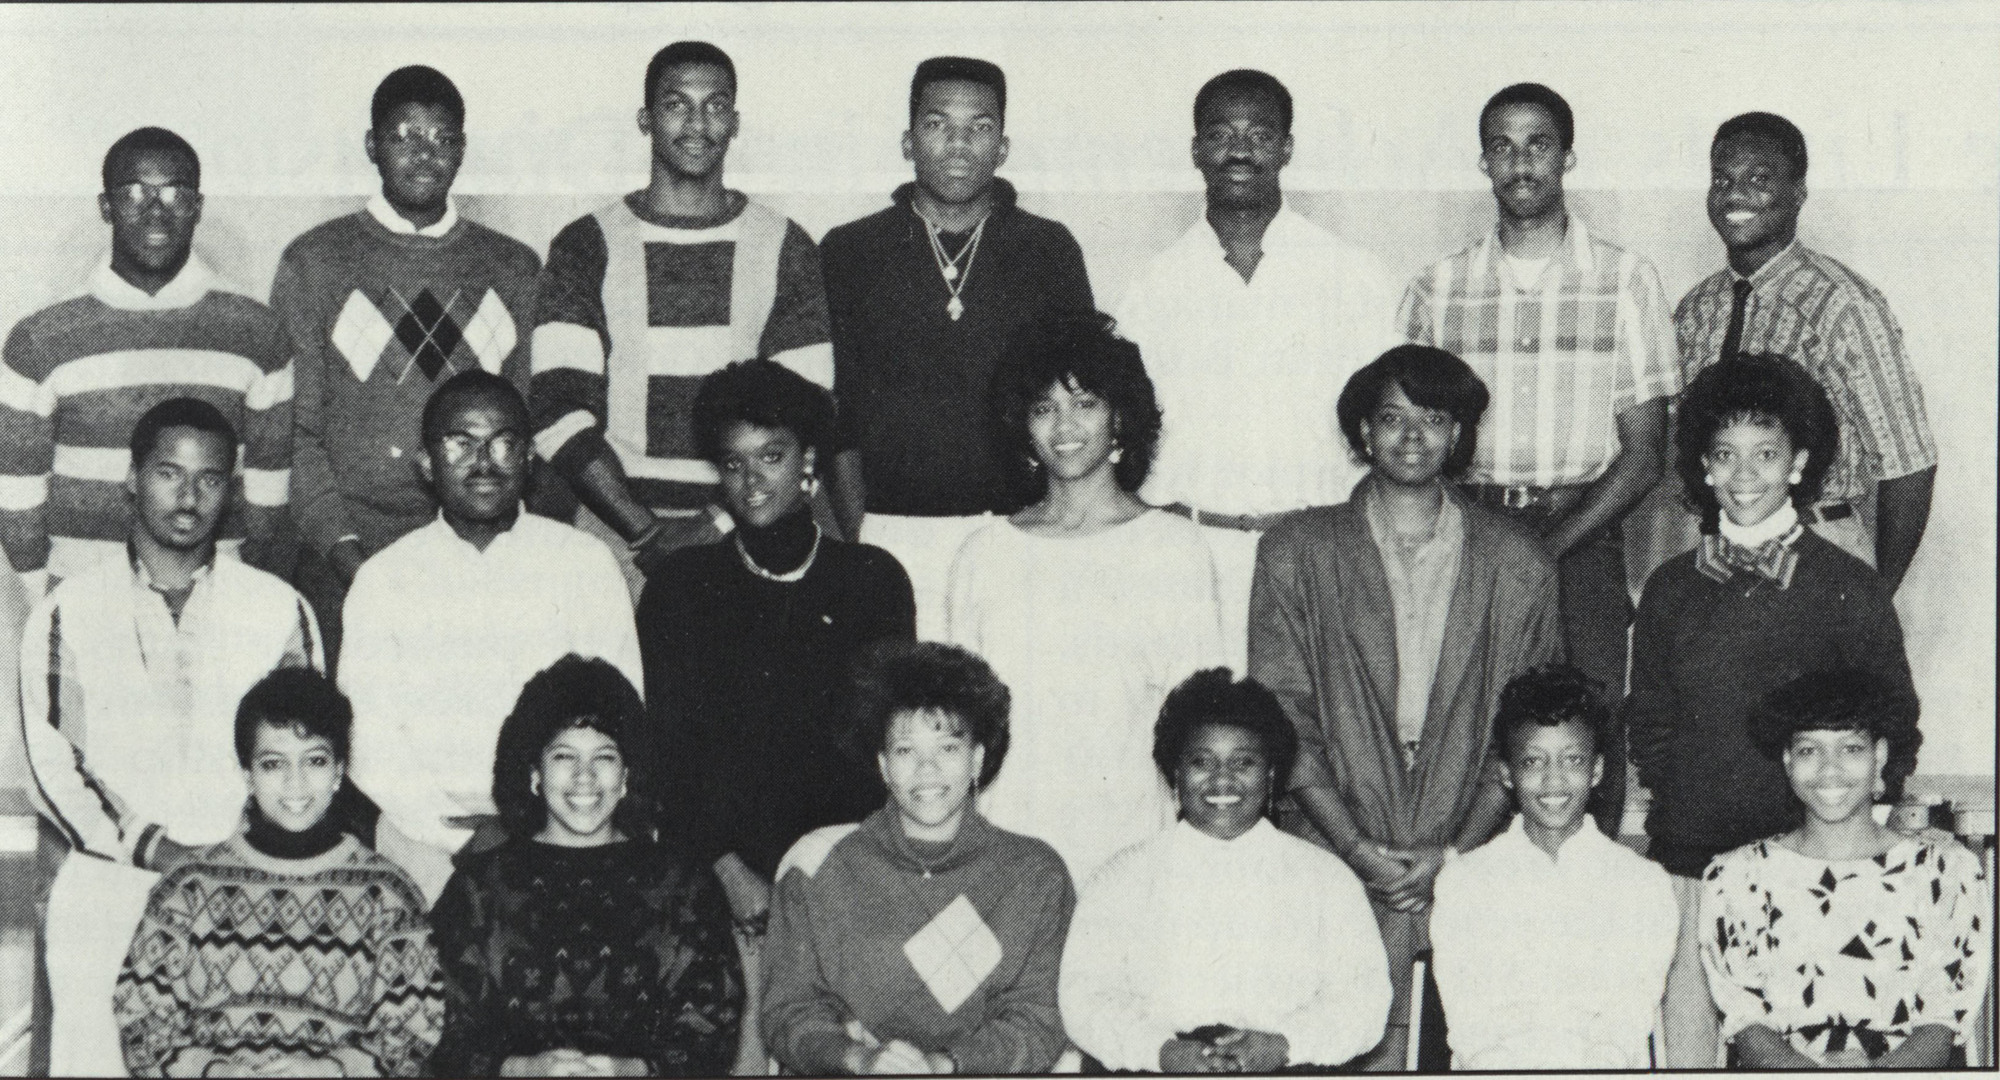 http://spec.lib.vt.edu/pickup/Omeka_upload/NationalSocietyofBlackEngineers_1988.jpg